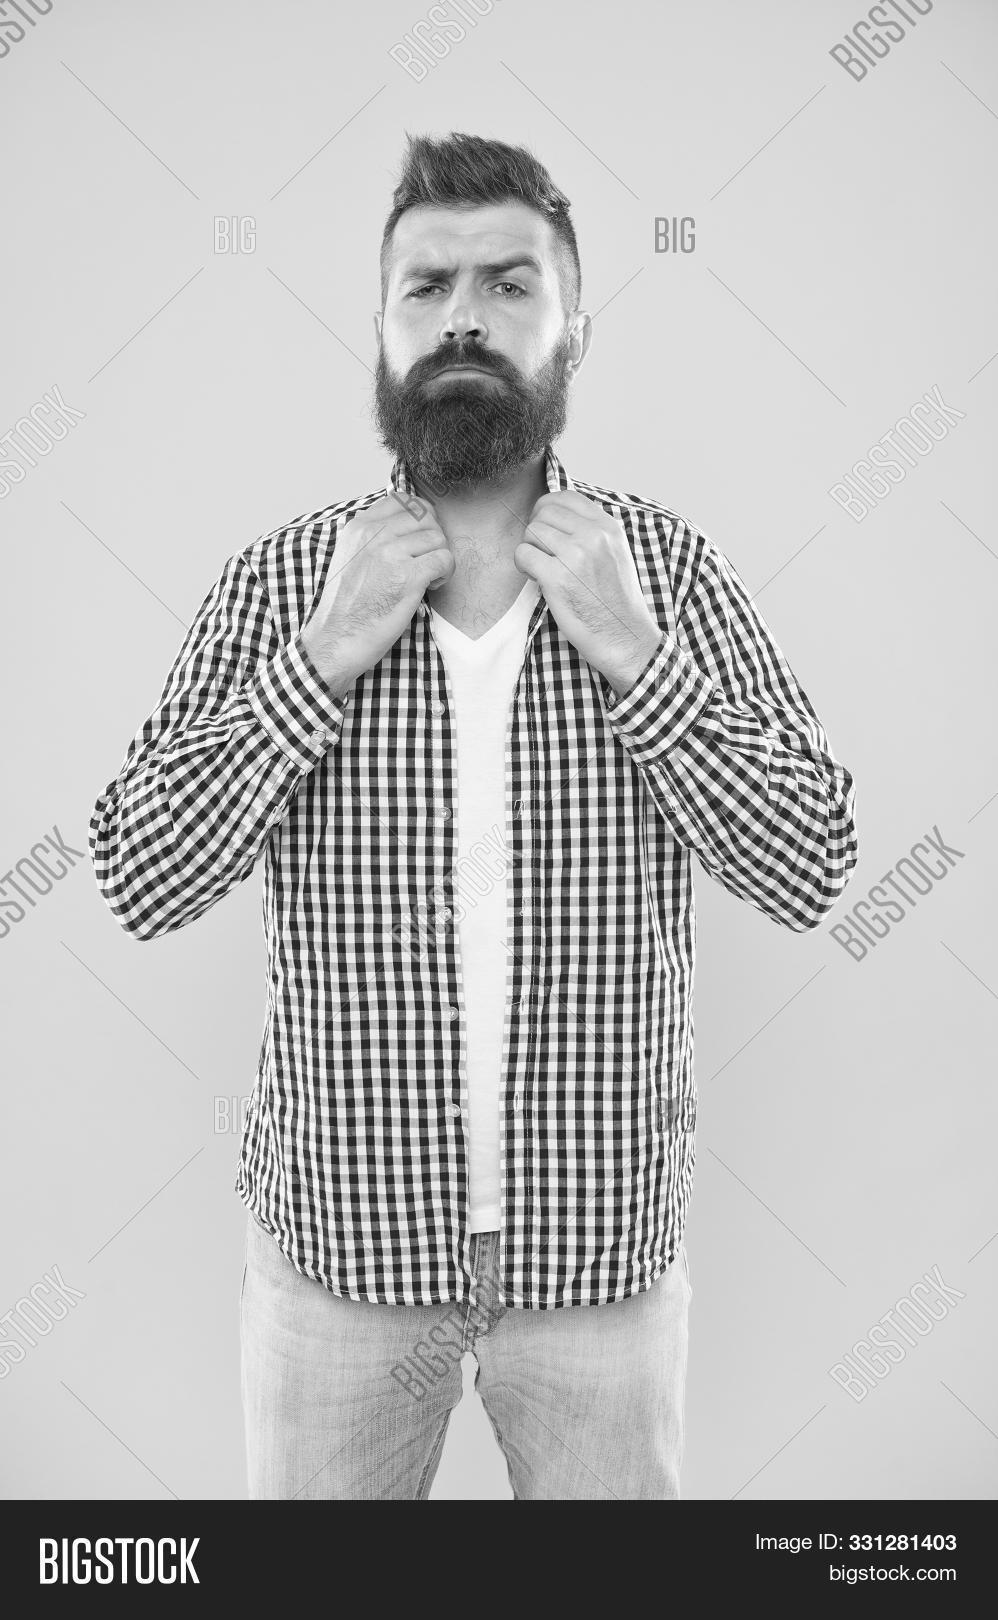 accessory,adjust,adult,appearance,background,barber,beard,bearded,bow,brutal,care,casual,caucasian,concept,emotional,expression,face,fashion,fashionable,guy,haircut,hairdresser,handsome,have,hipster,i,imagination,imagine,invisible,lumbersexual,macho,maintain,man,masculine,masculinity,mustache,tie,tips,unshaven,yellow